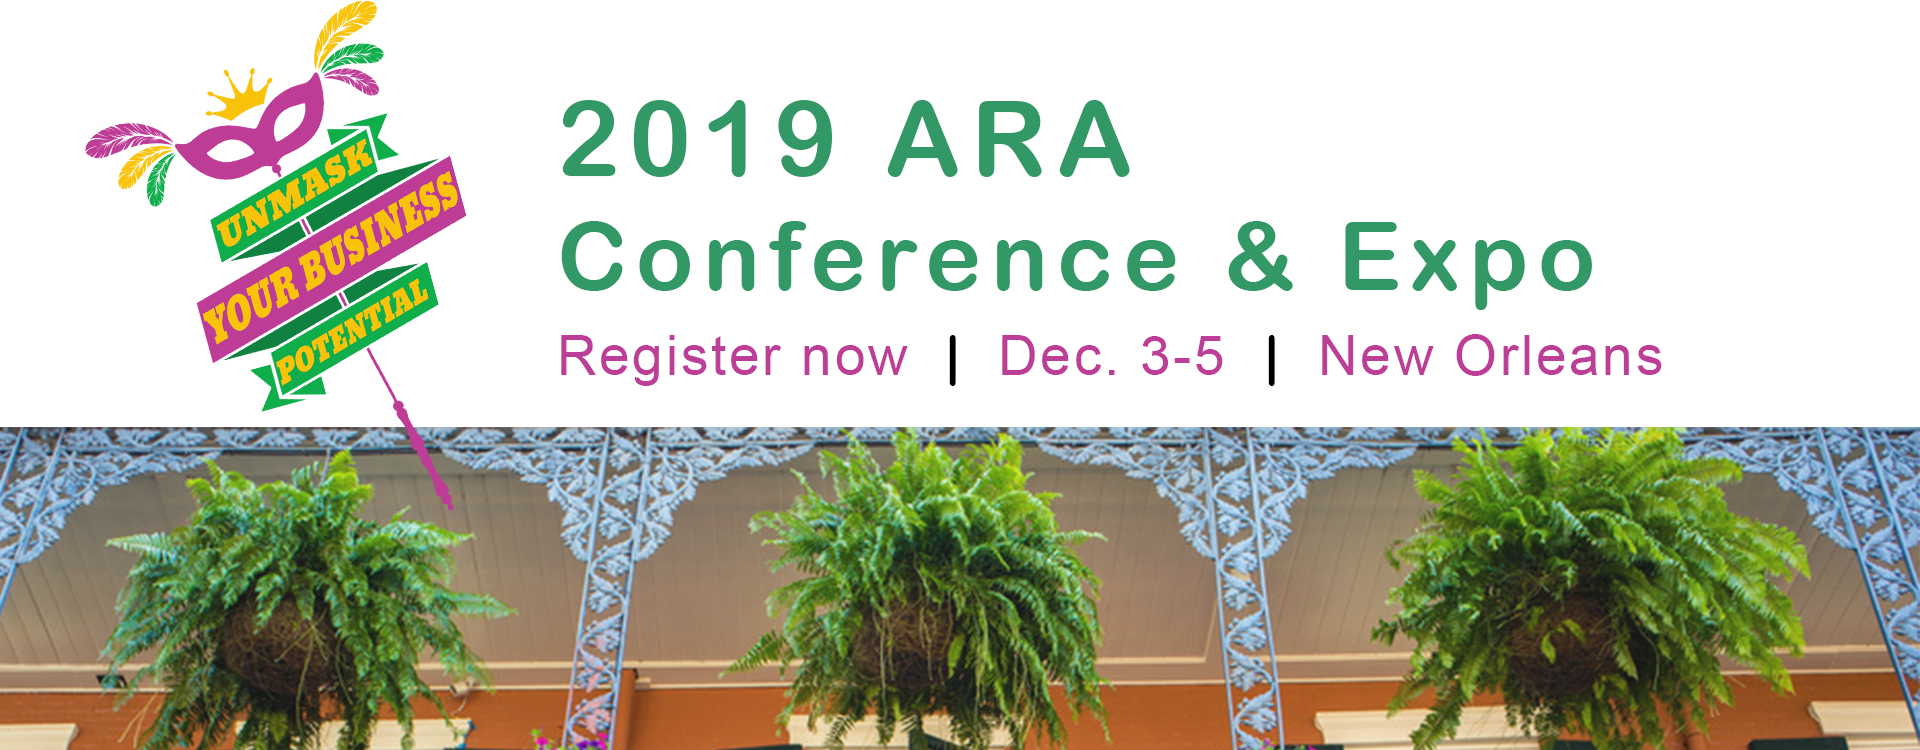 2019 ARA Conference and Expo